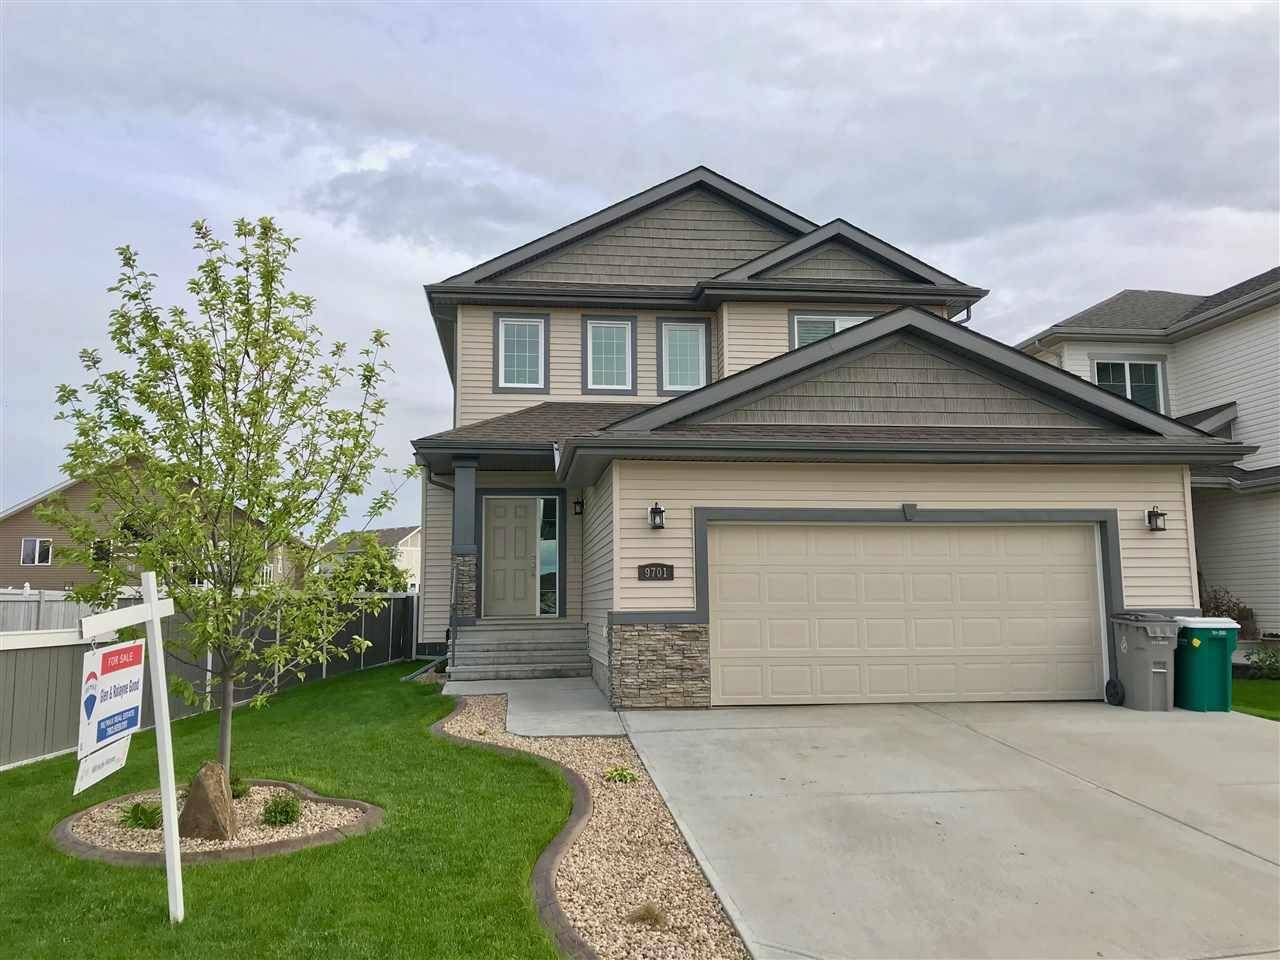 House for sale at 9701 103 Ave Morinville Alberta - MLS: E4164383